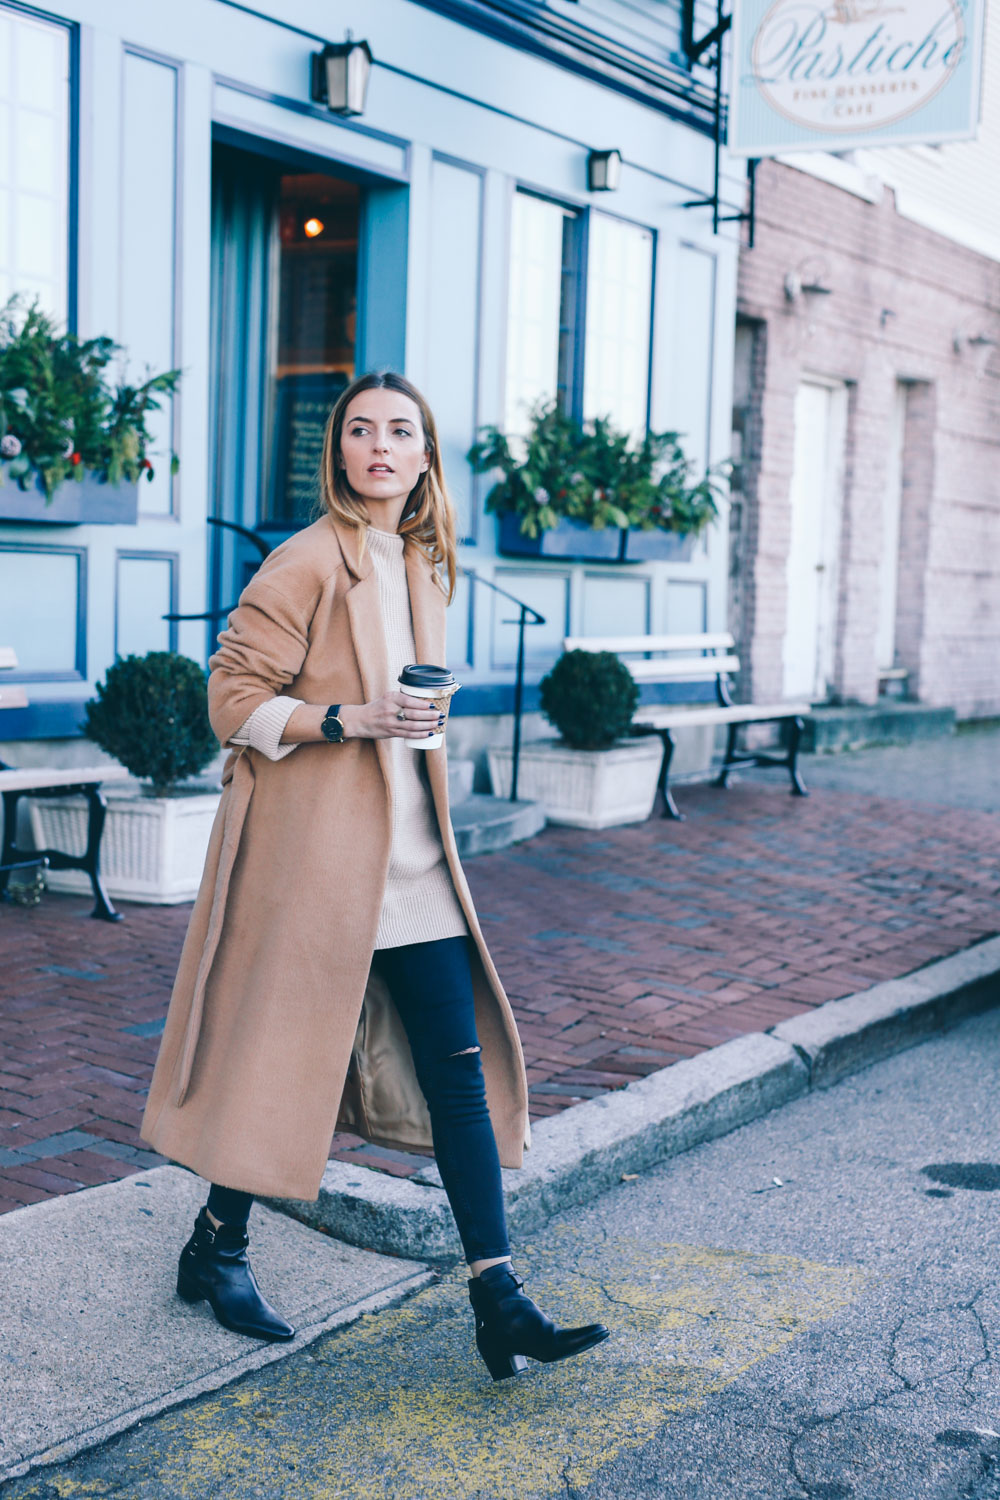 Jess Ann Kirby shares what it's like to be a full time blogger